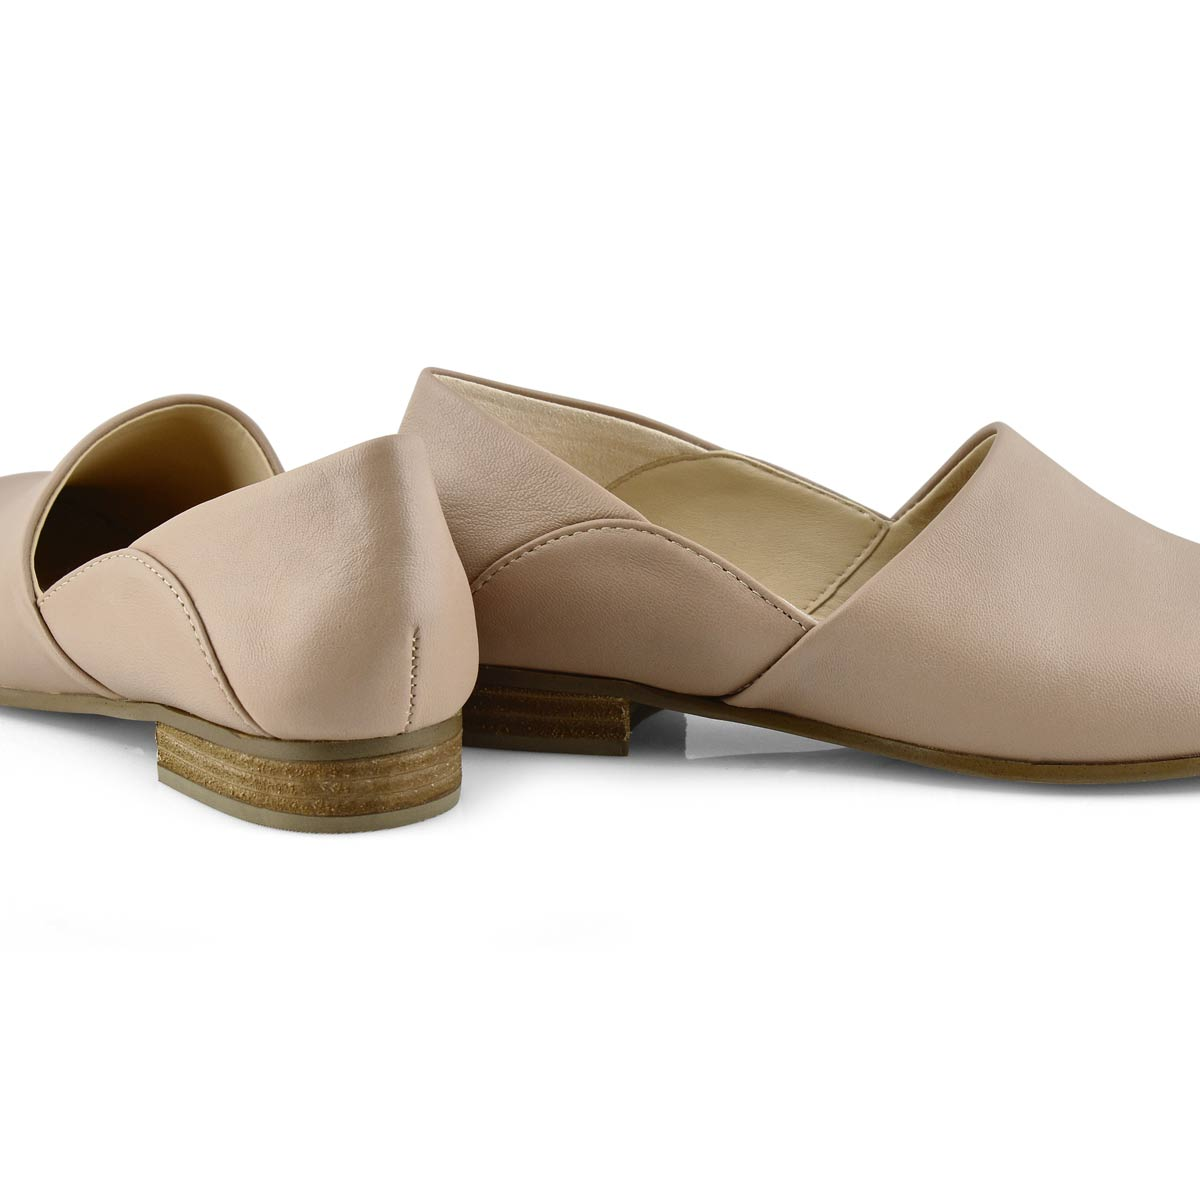 Lds Pure Tone nude dress loafer